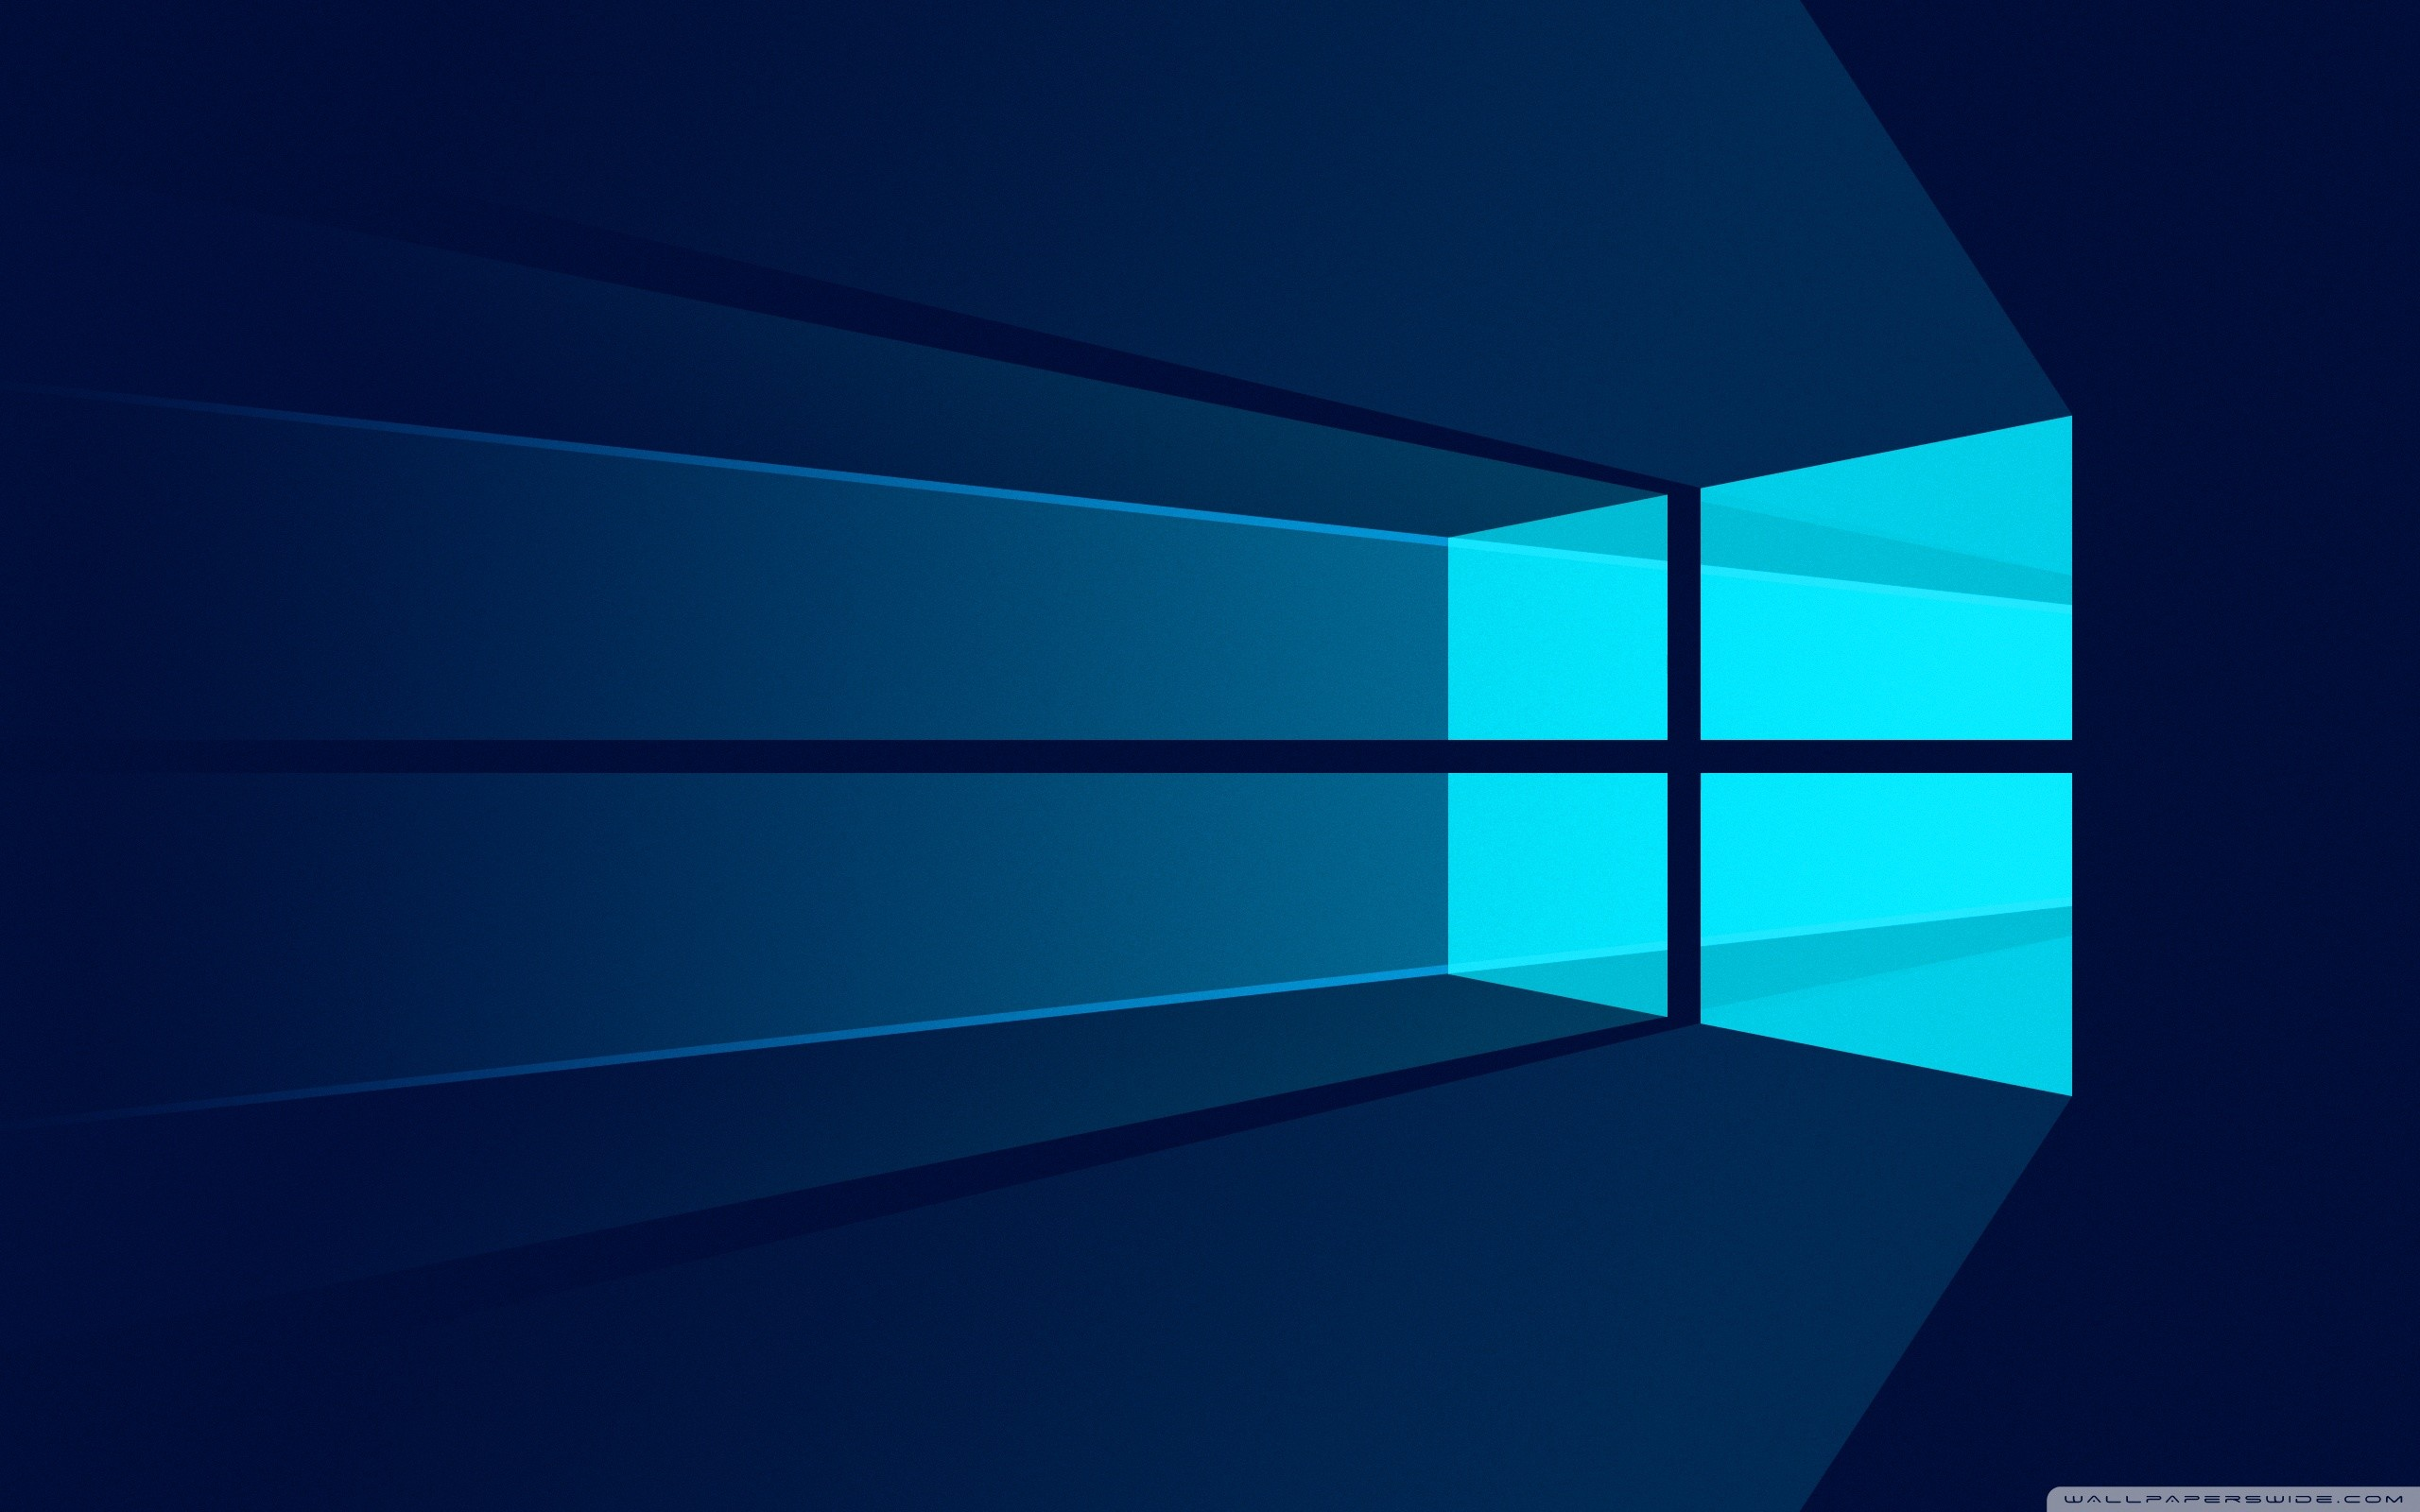 Windows 10 Background 1920x1080